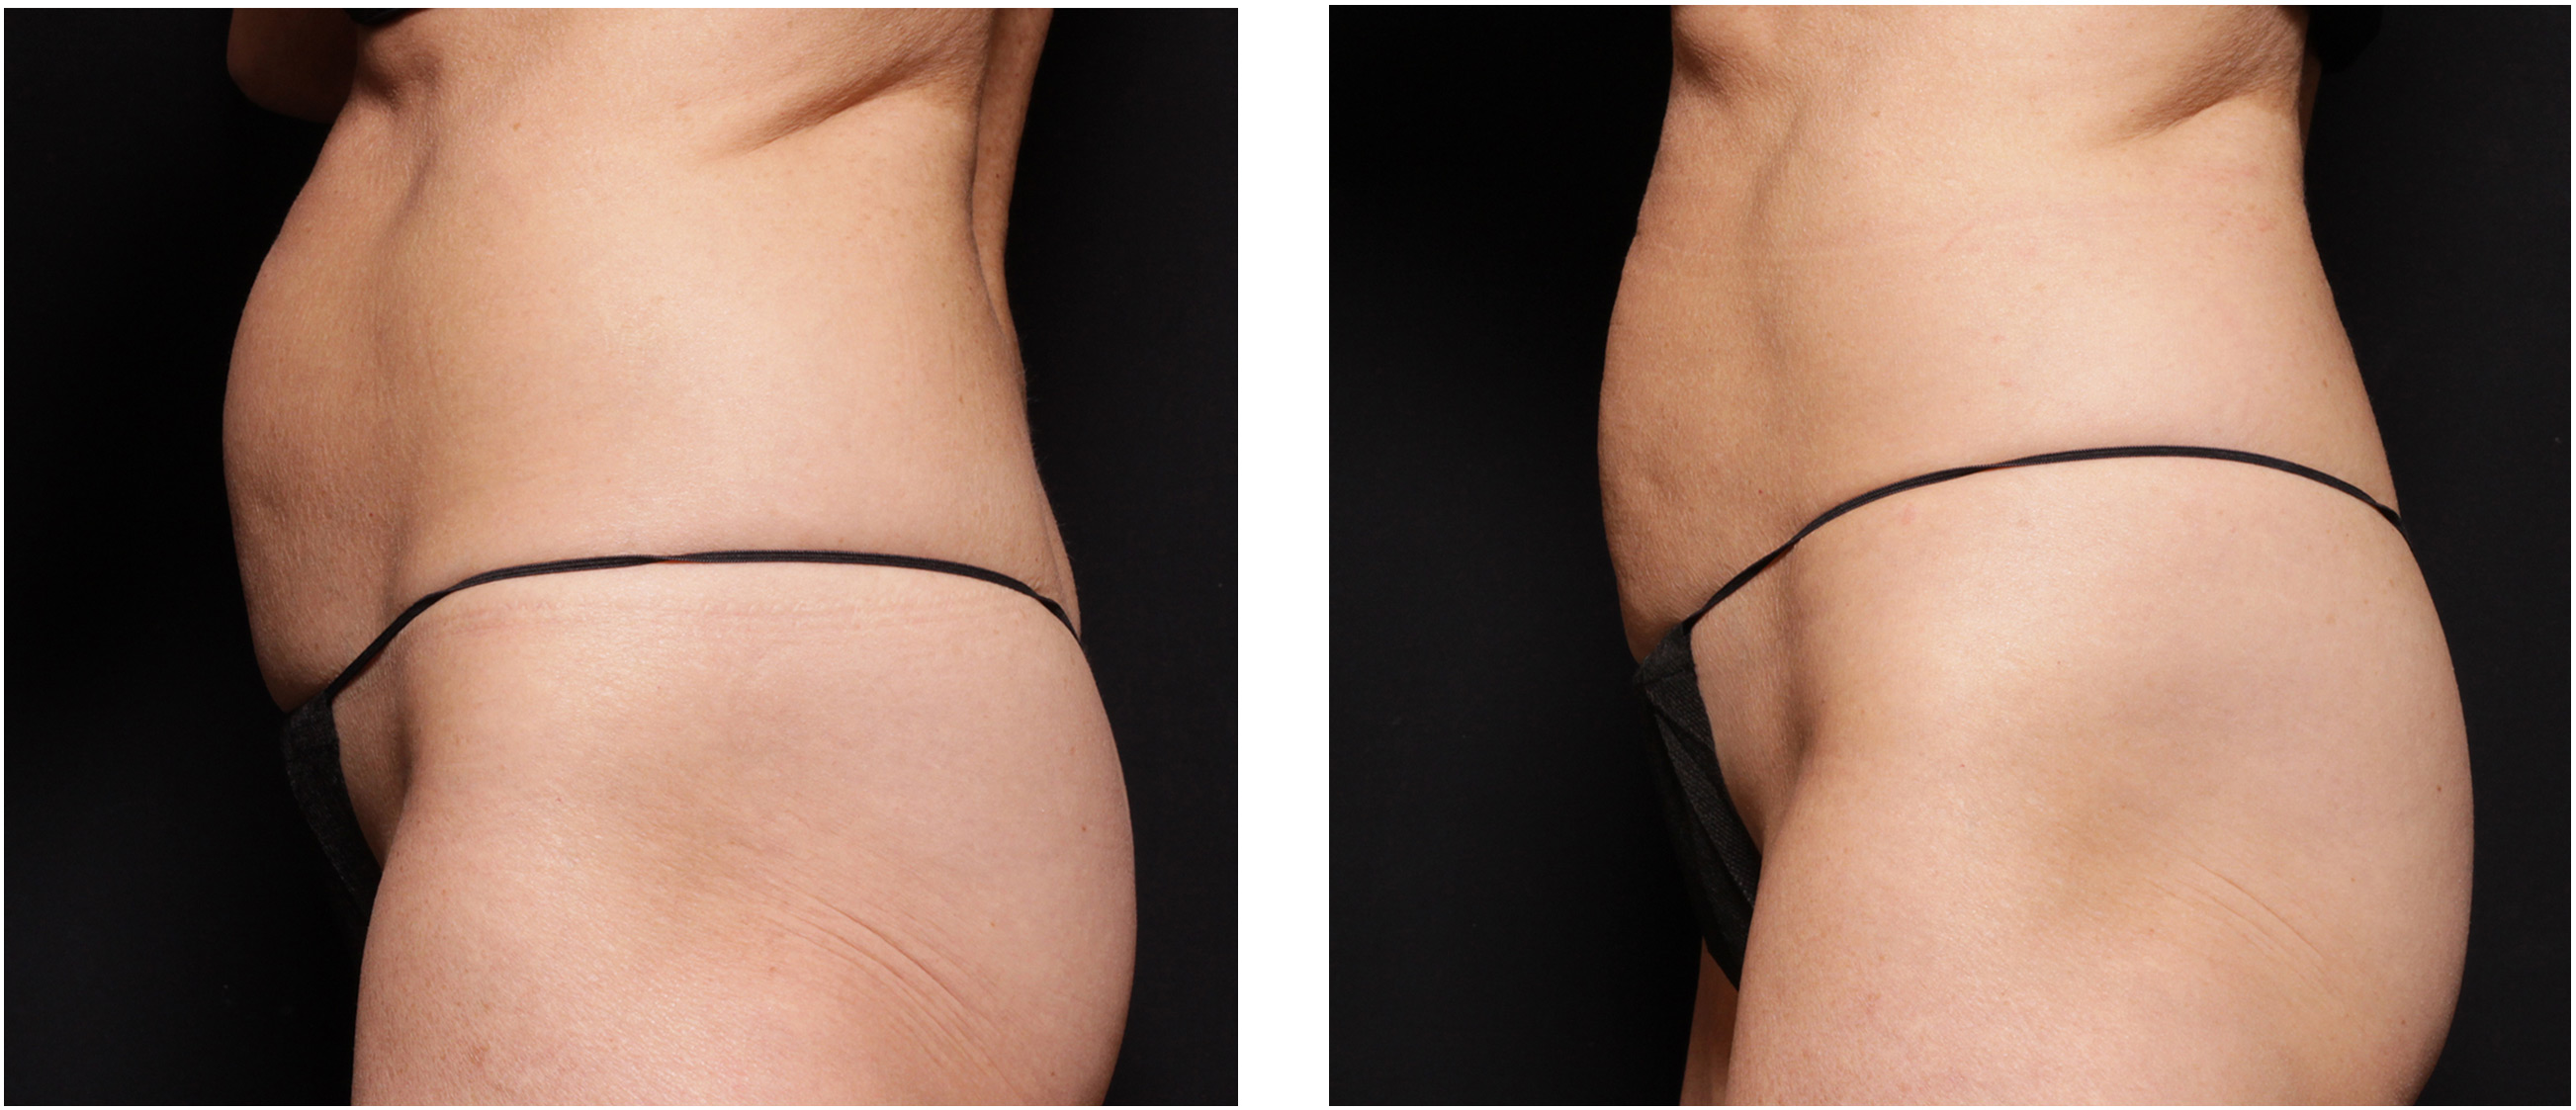 Before and after photograph of woman's abdomen following UltraShape Power body sculpting.